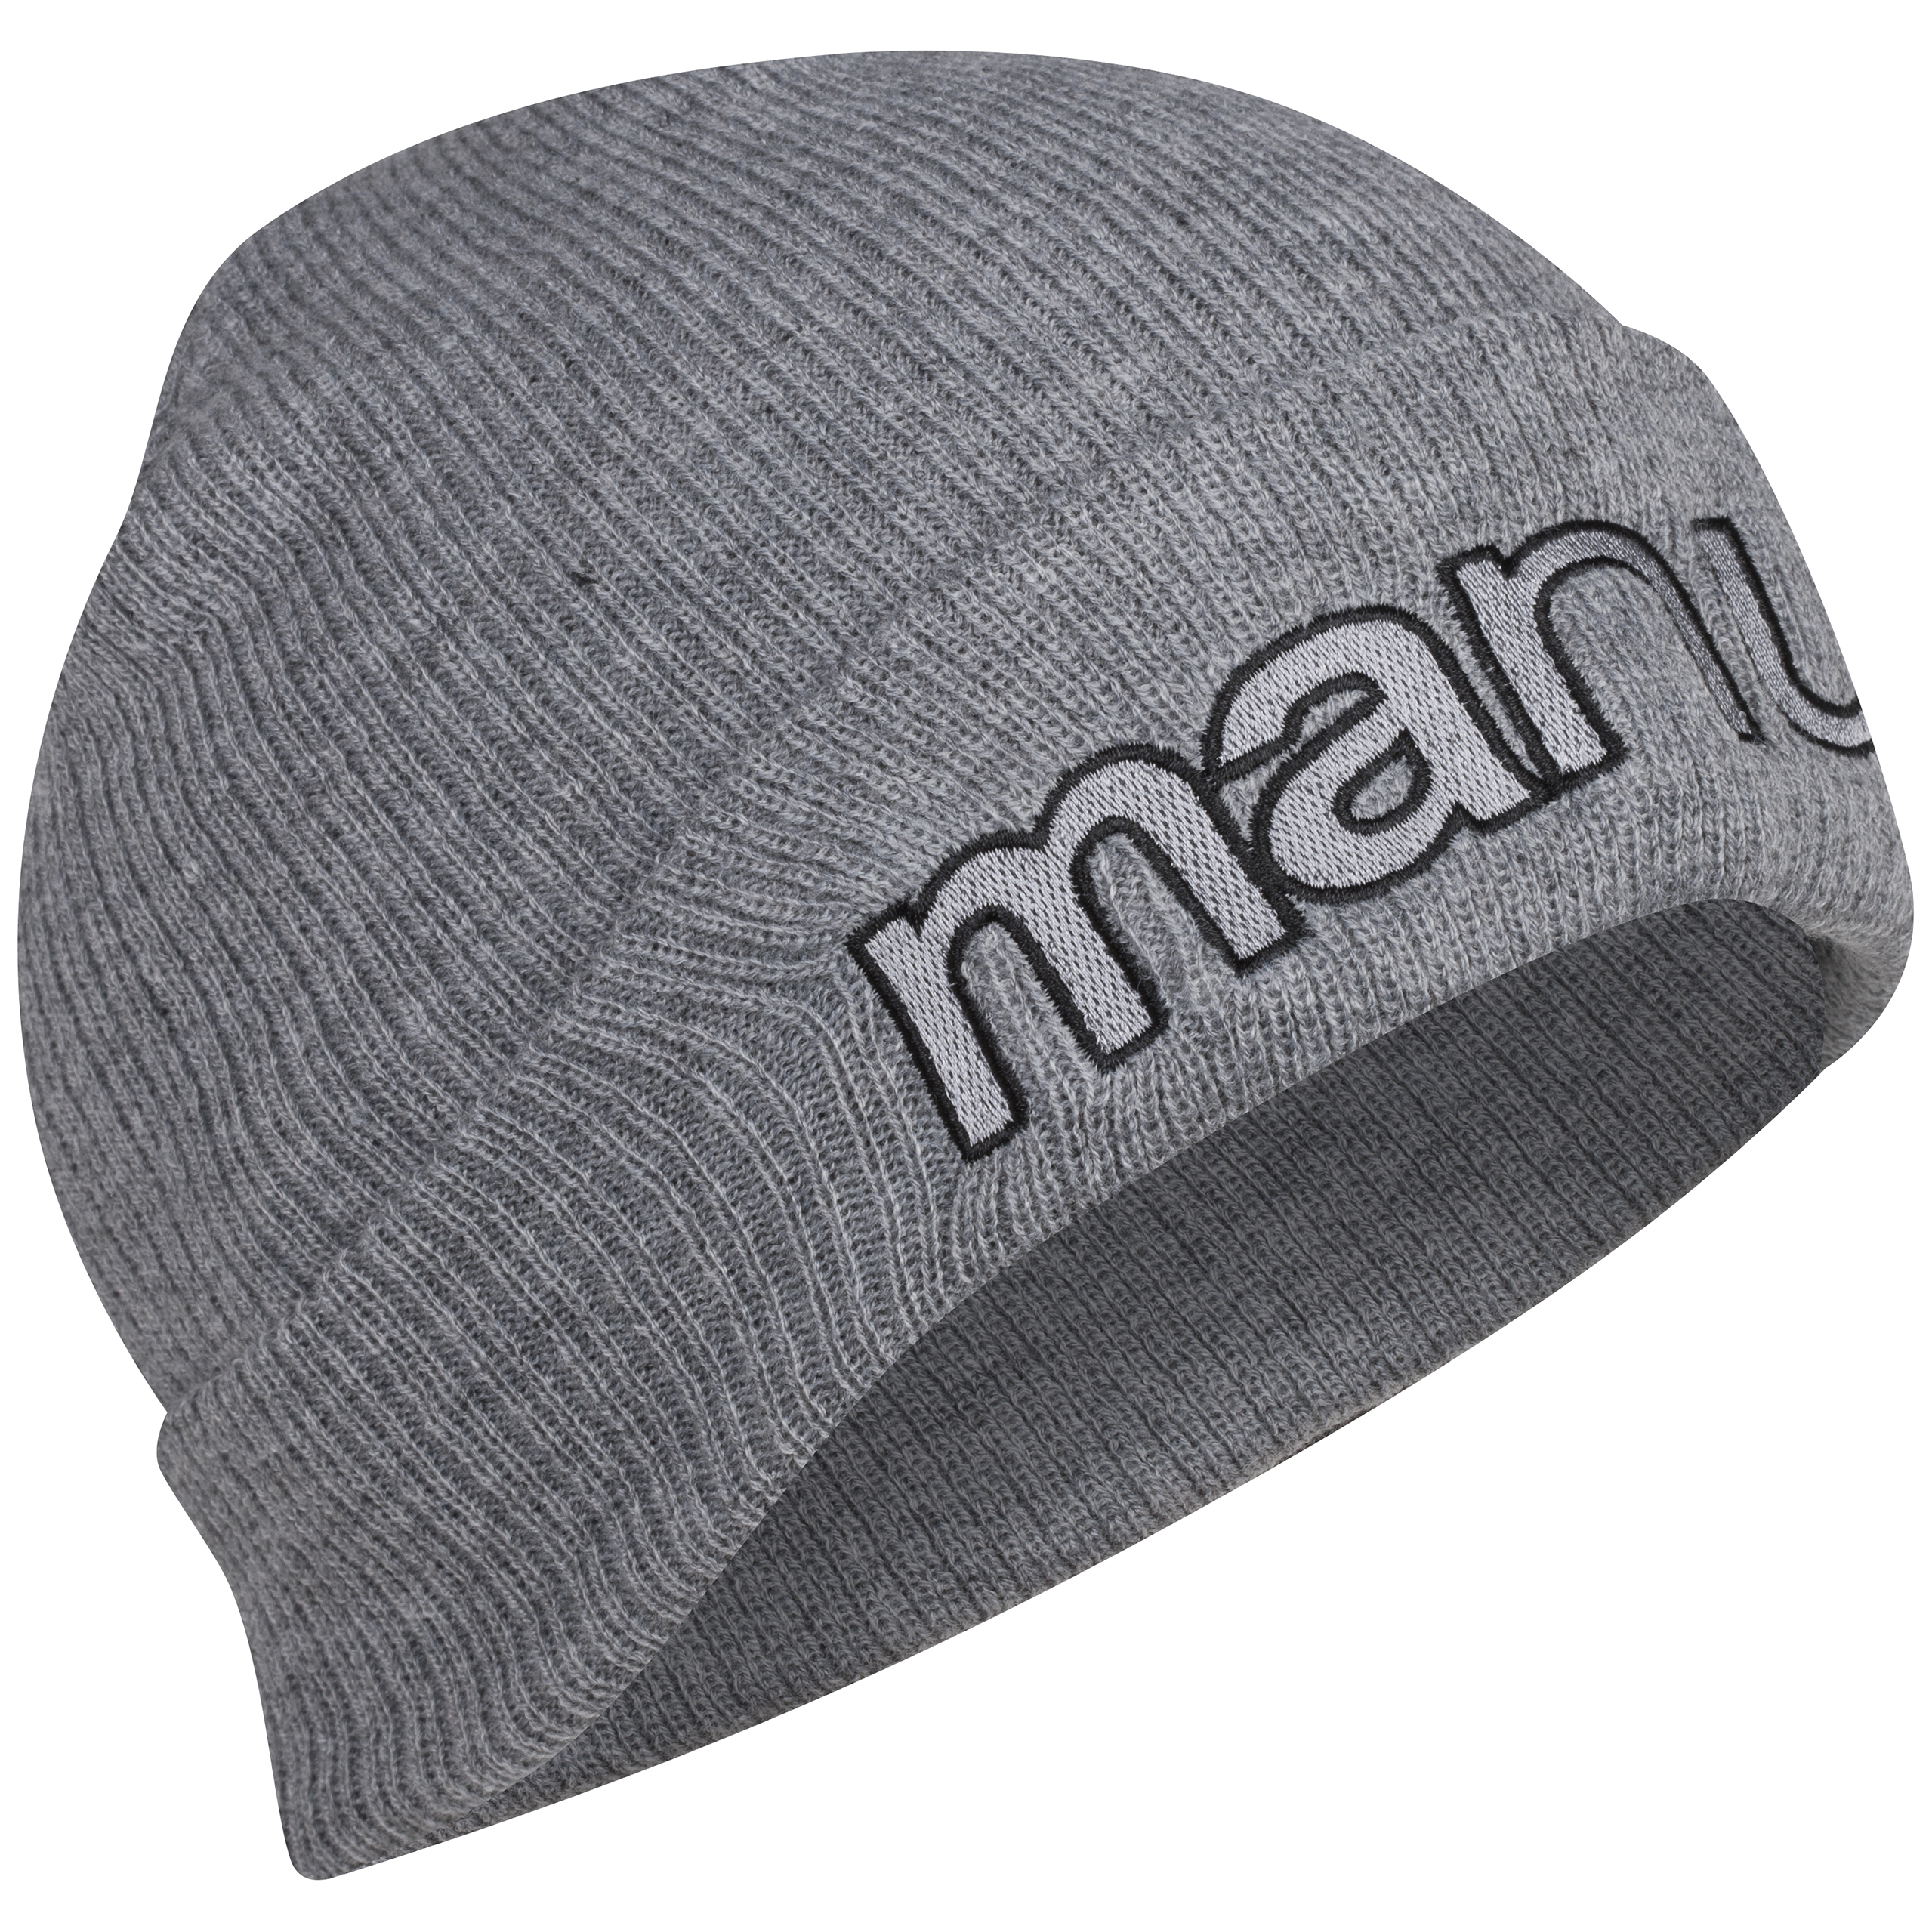 Manchester United Jersey Cuff Beanie Hat - Adult Grey